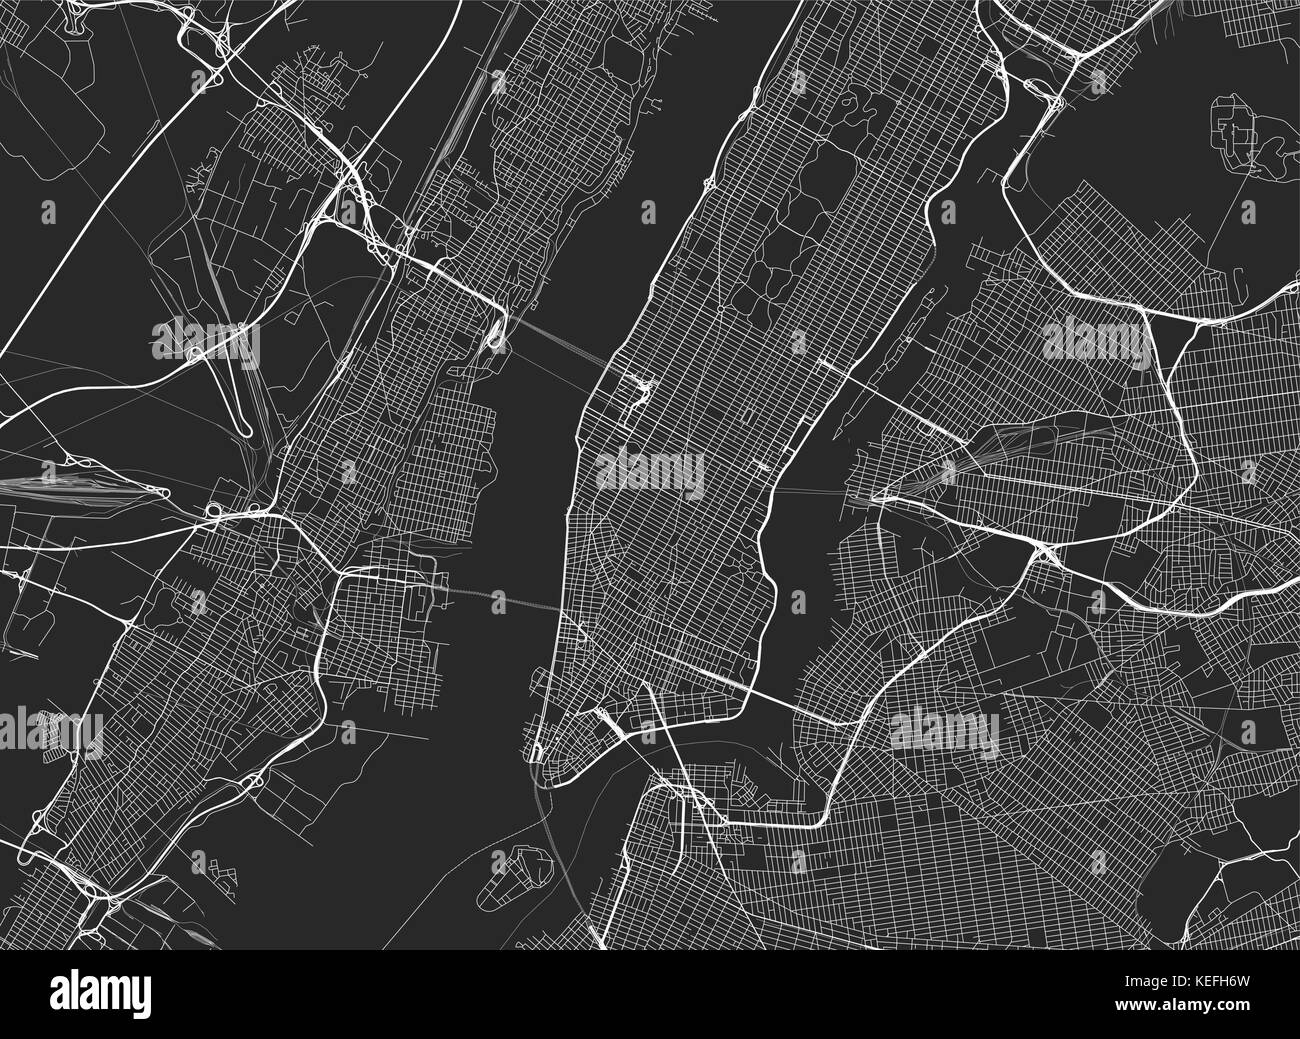 Vector background with all streets of New York and surroundings map